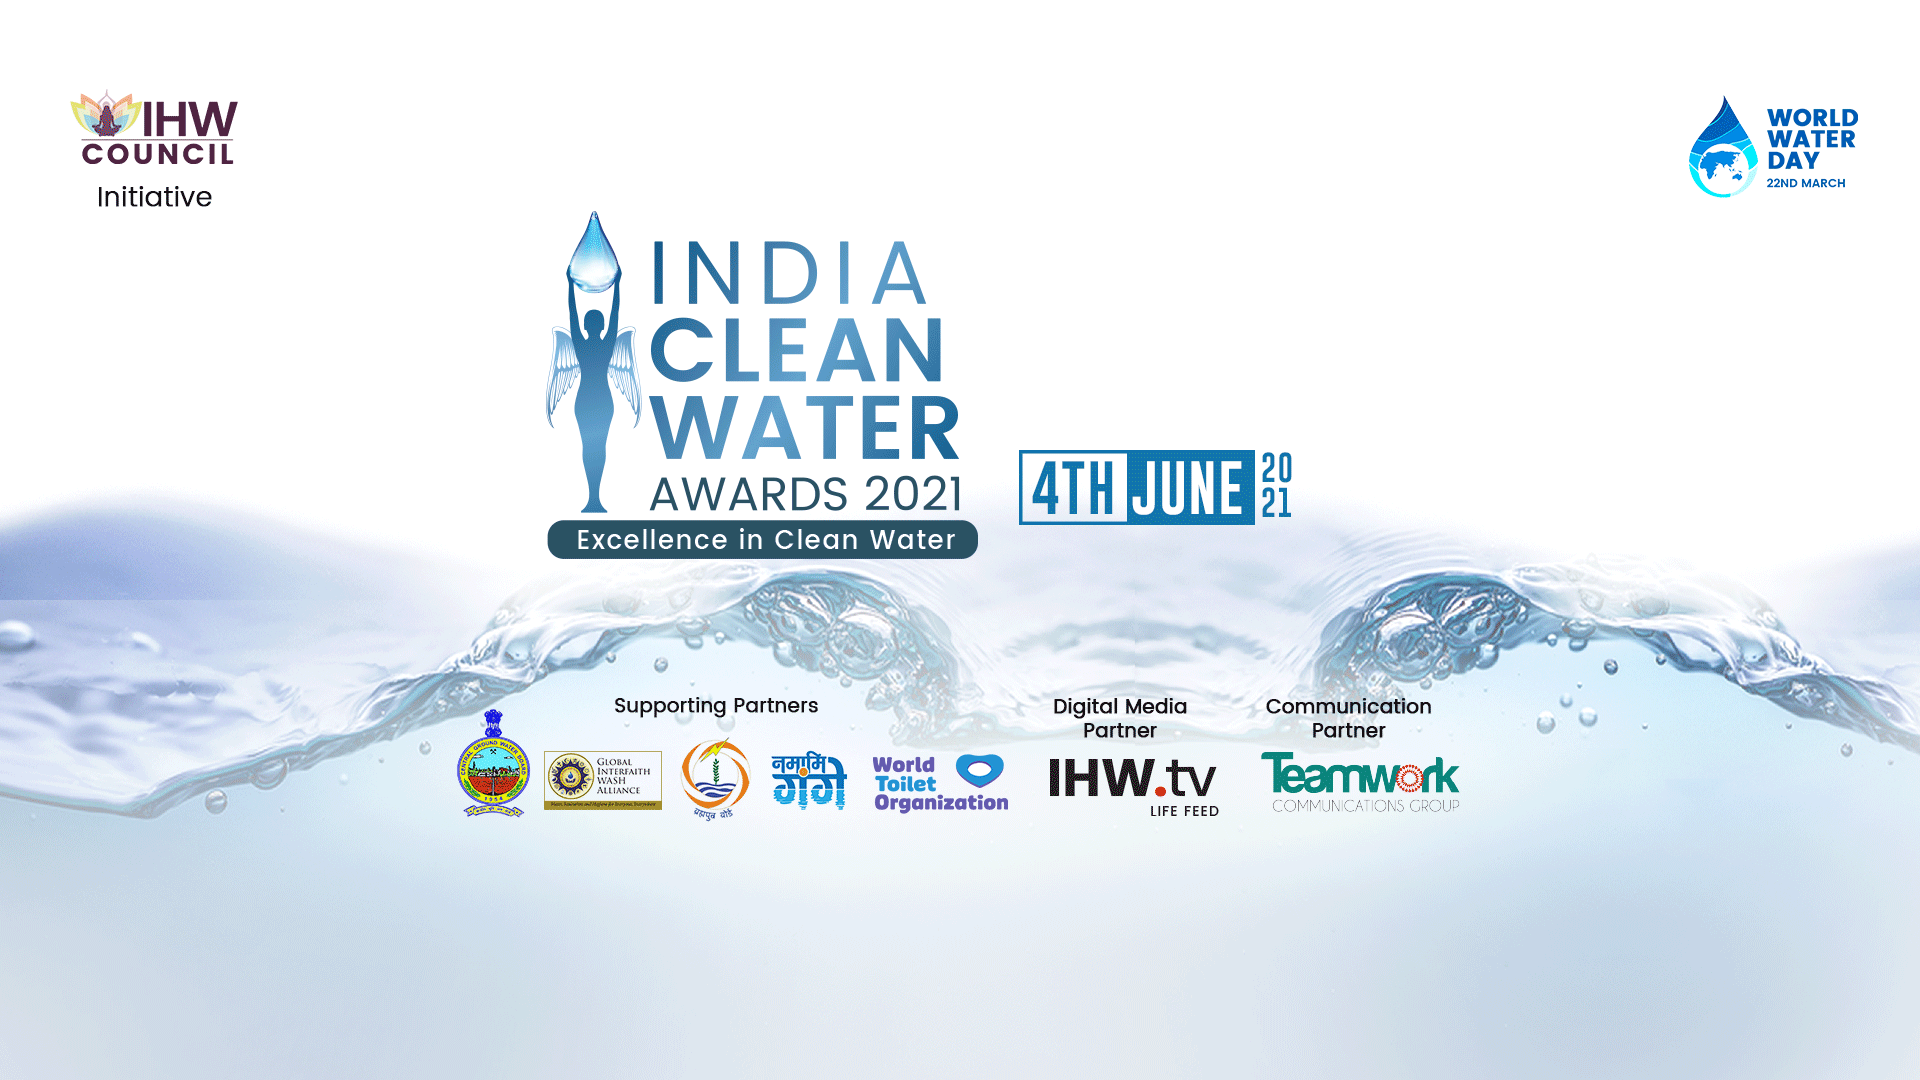 India Clean Water Awards